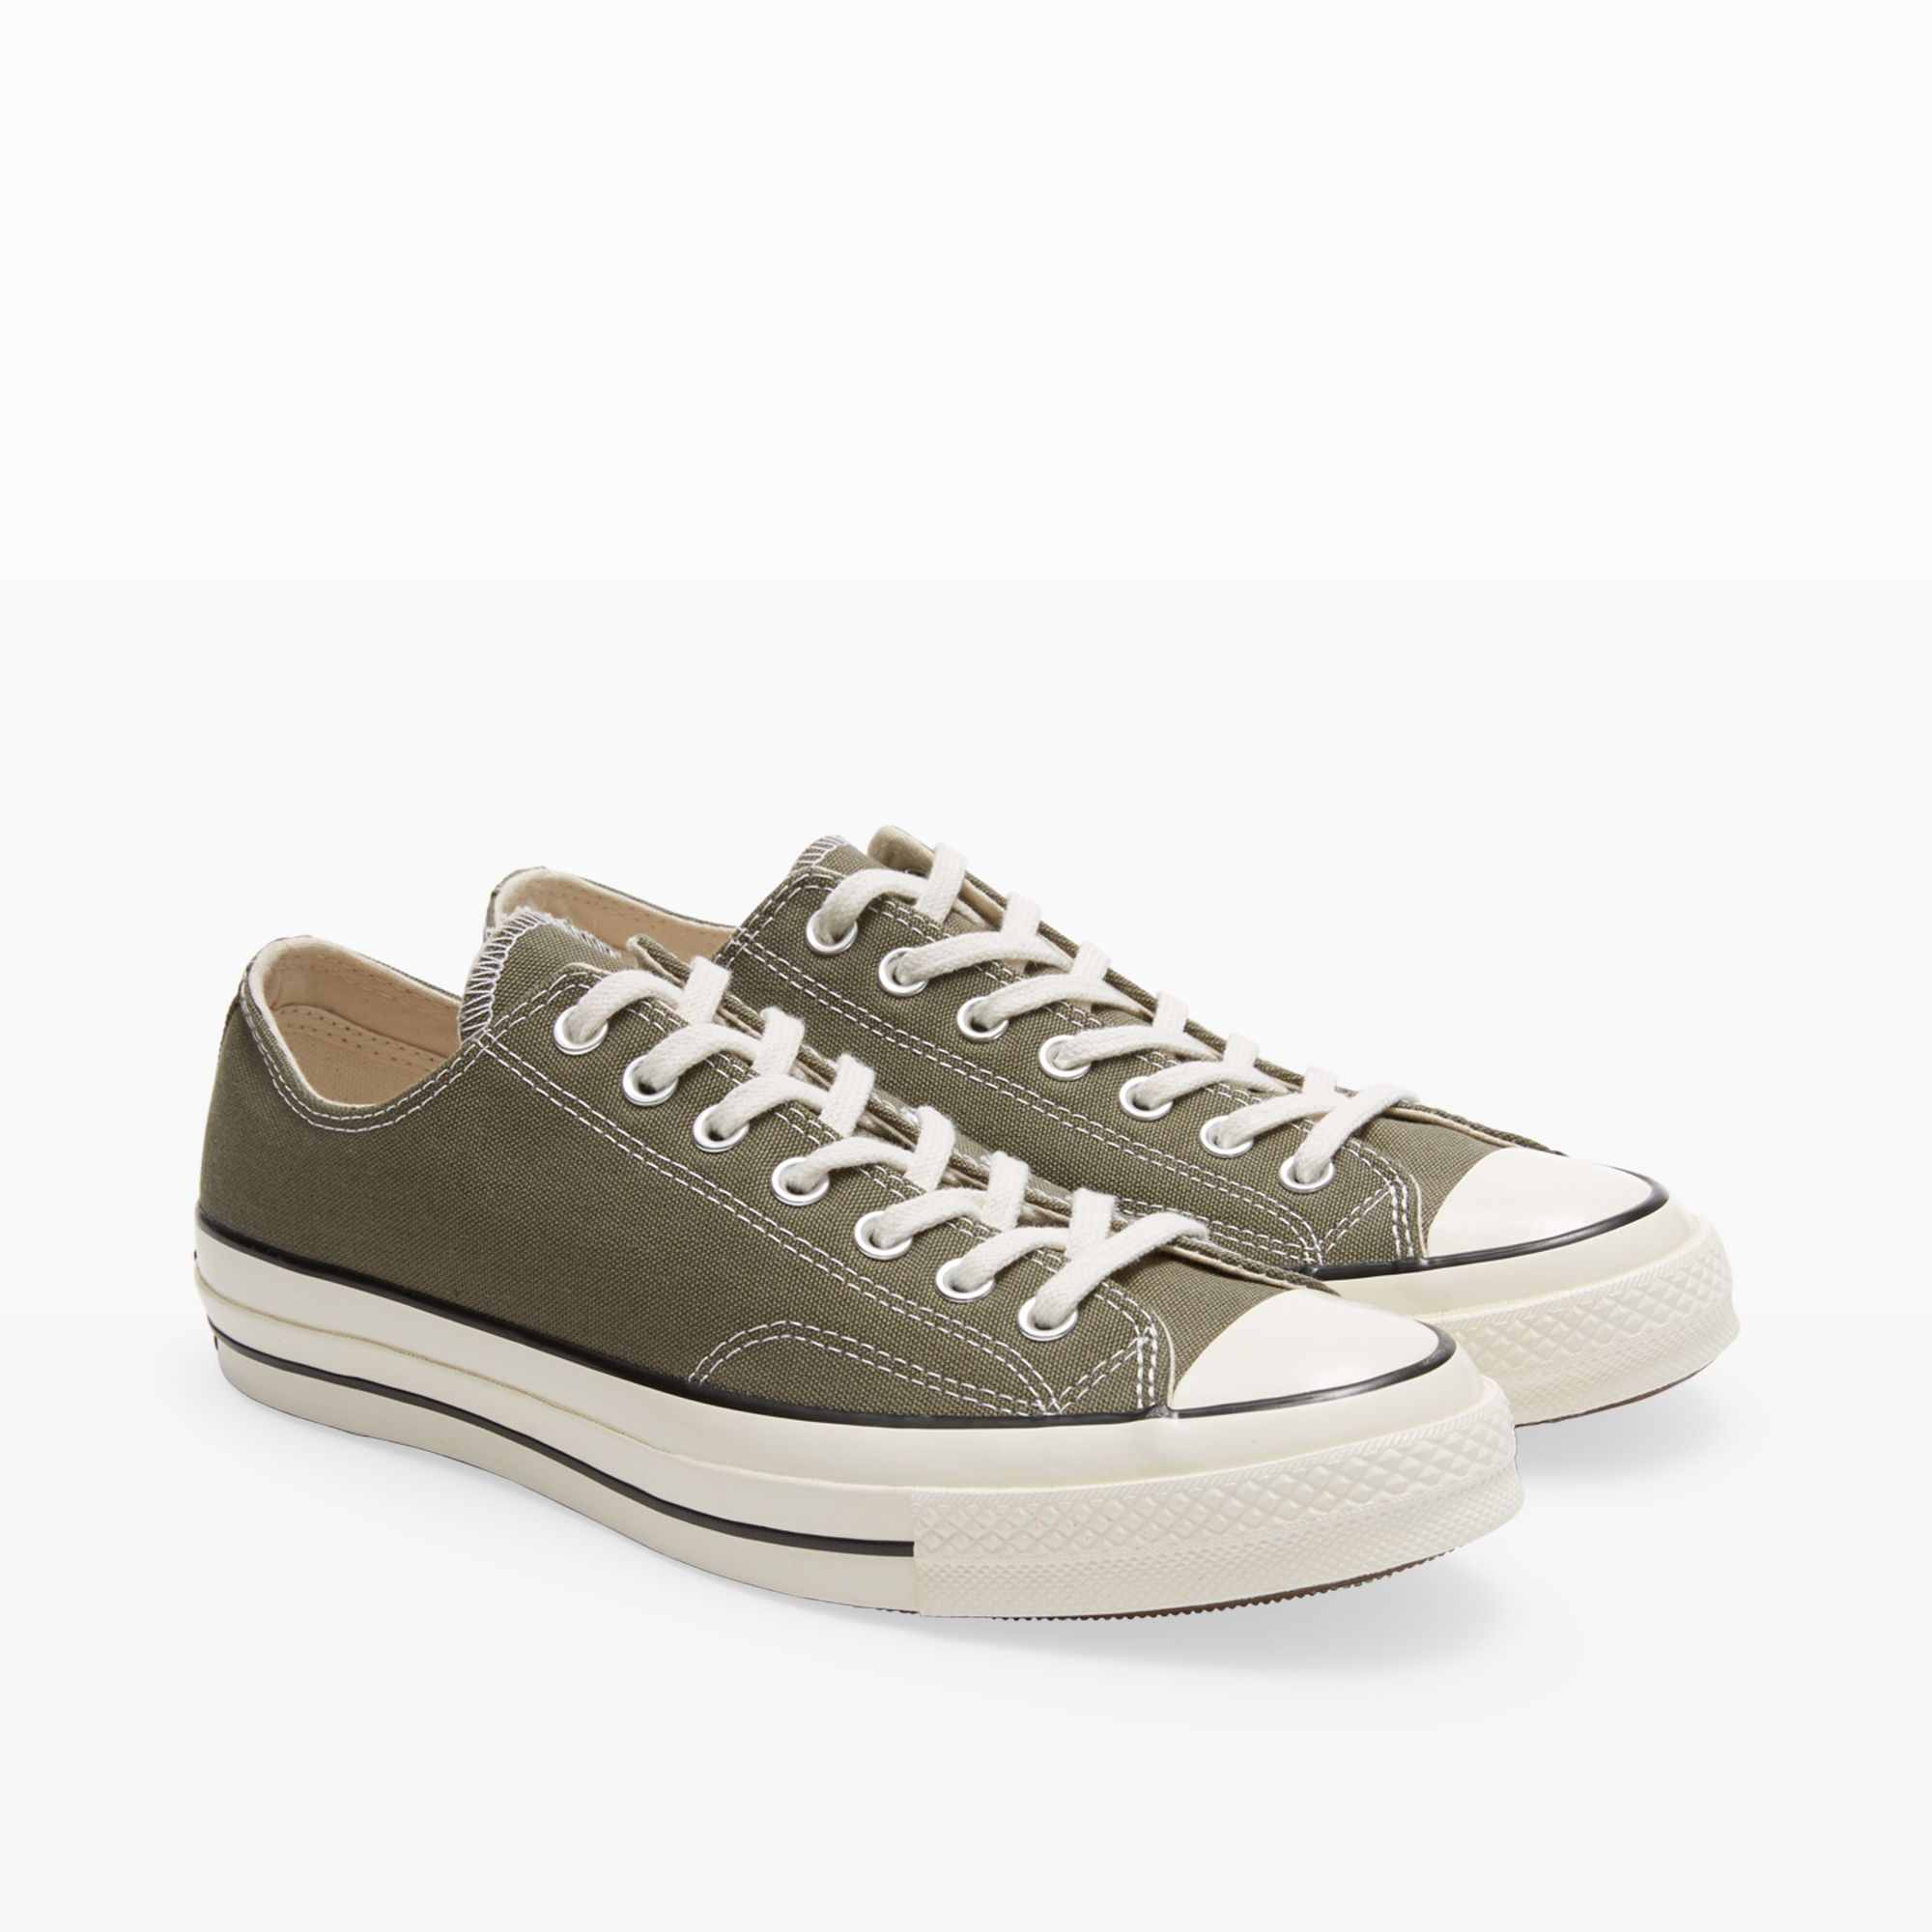 4bf10d1953a Lyst - Club Monaco Converse 70s Chuck Taylor Low in Green for Men